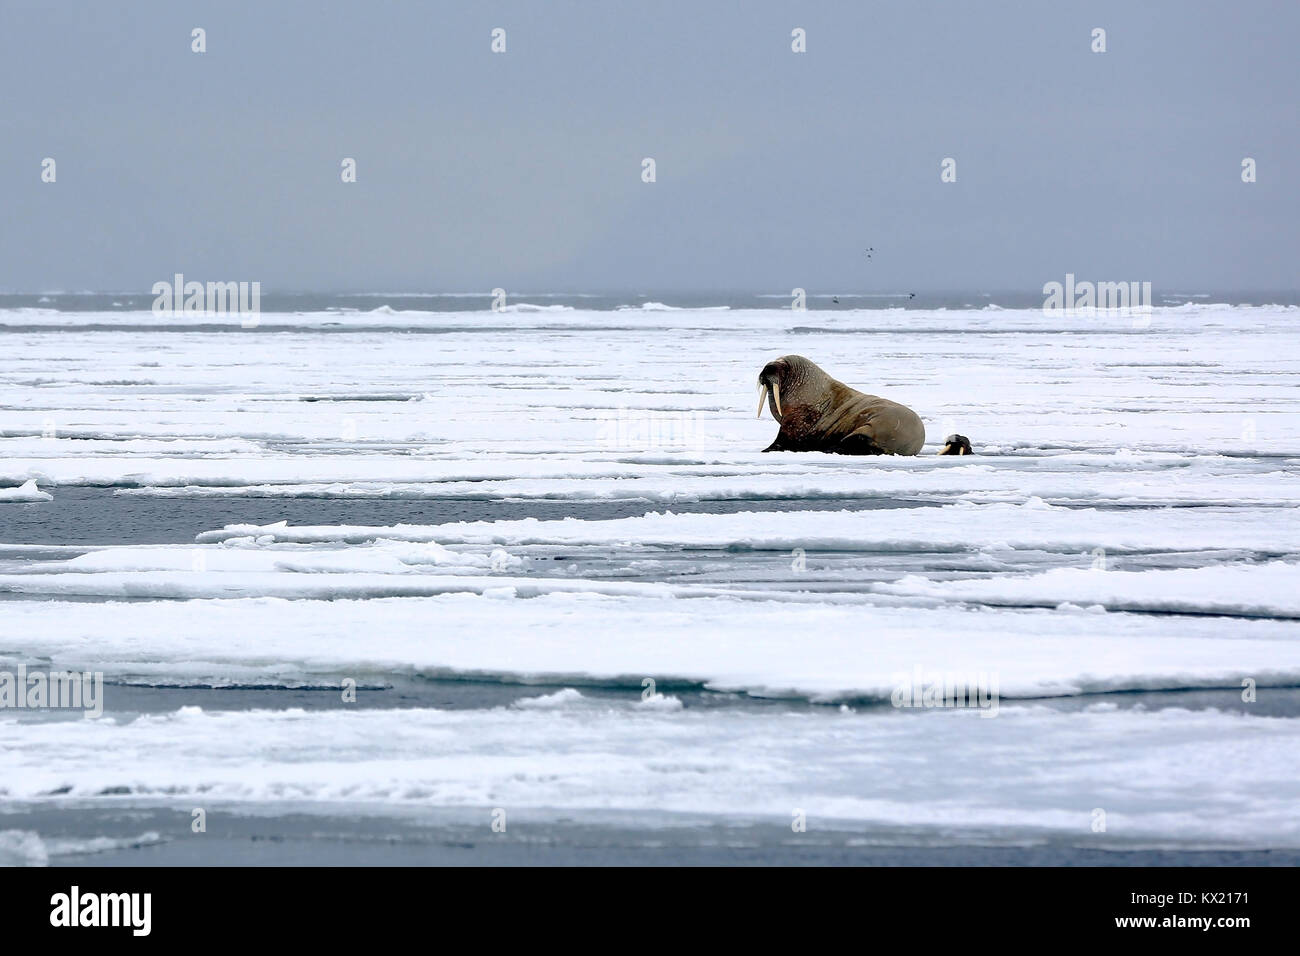 One Walrus on the Ice and one Looking up from a Hole in the Ice, outside Spitsbergen. Svalbard, Norway - Stock Image